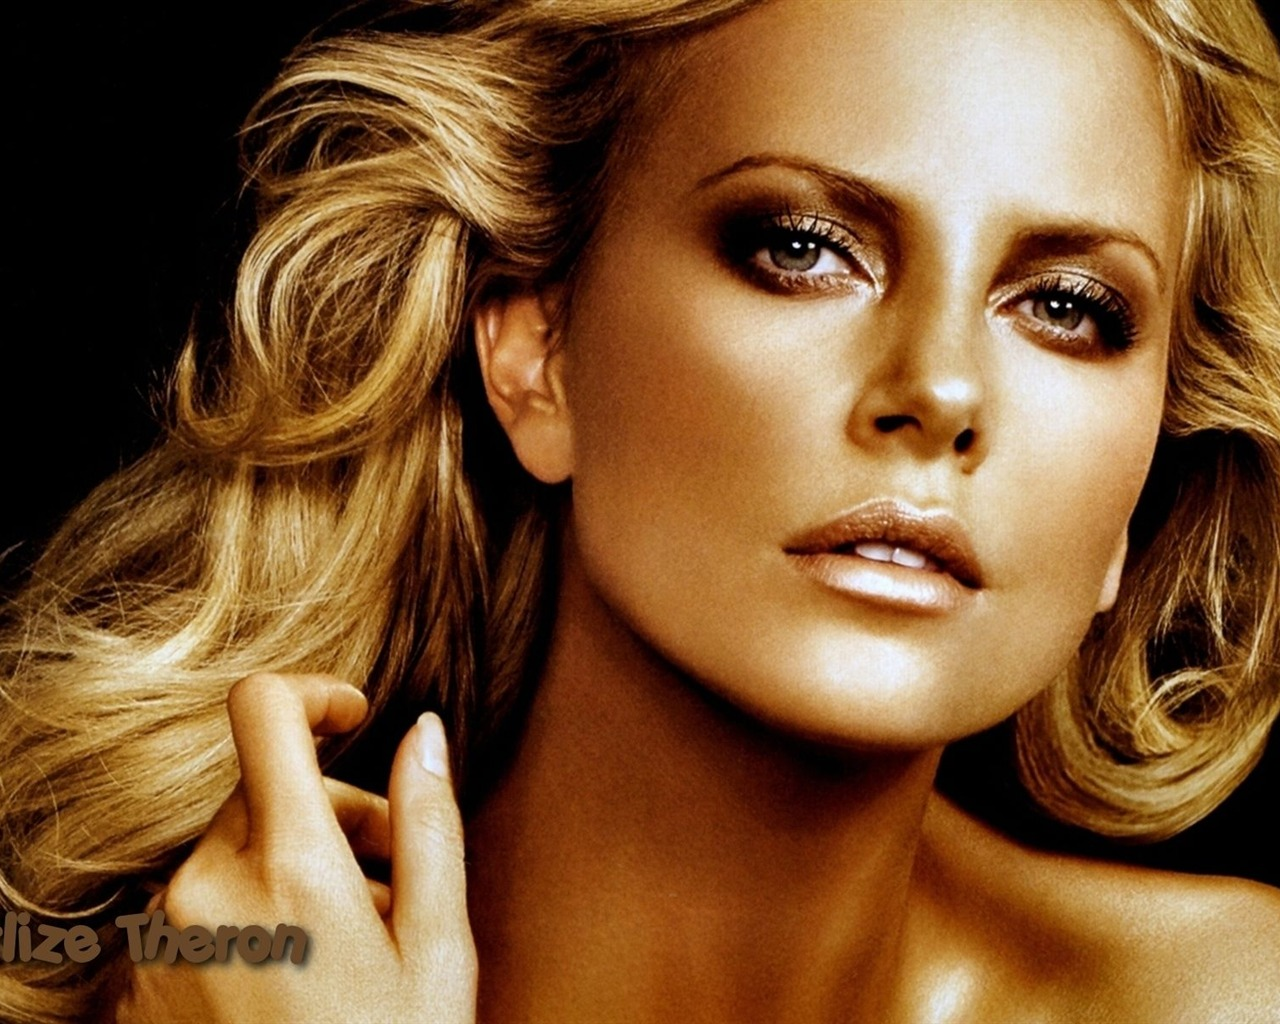 Charlize Theron #072 - 1280x1024 Wallpapers Pictures Photos Images